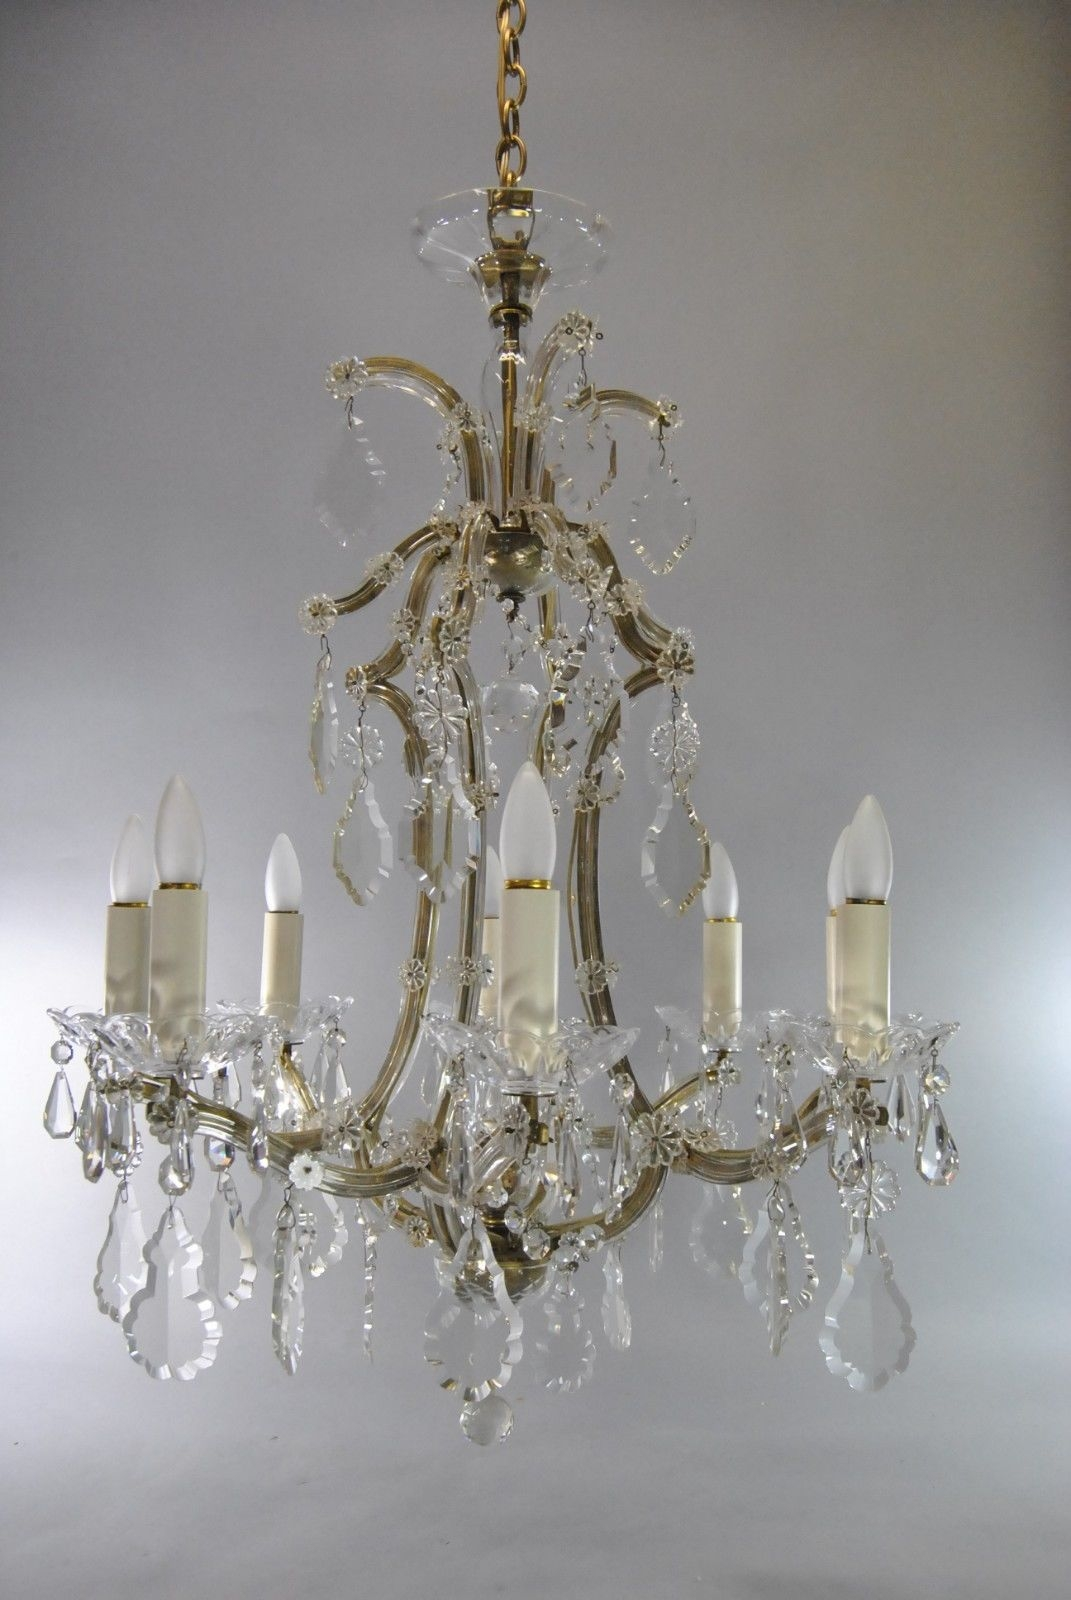 Chandelier Stunning French Crystal Chandelier Empire Chandeliers For French Crystal Chandeliers (#3 of 12)